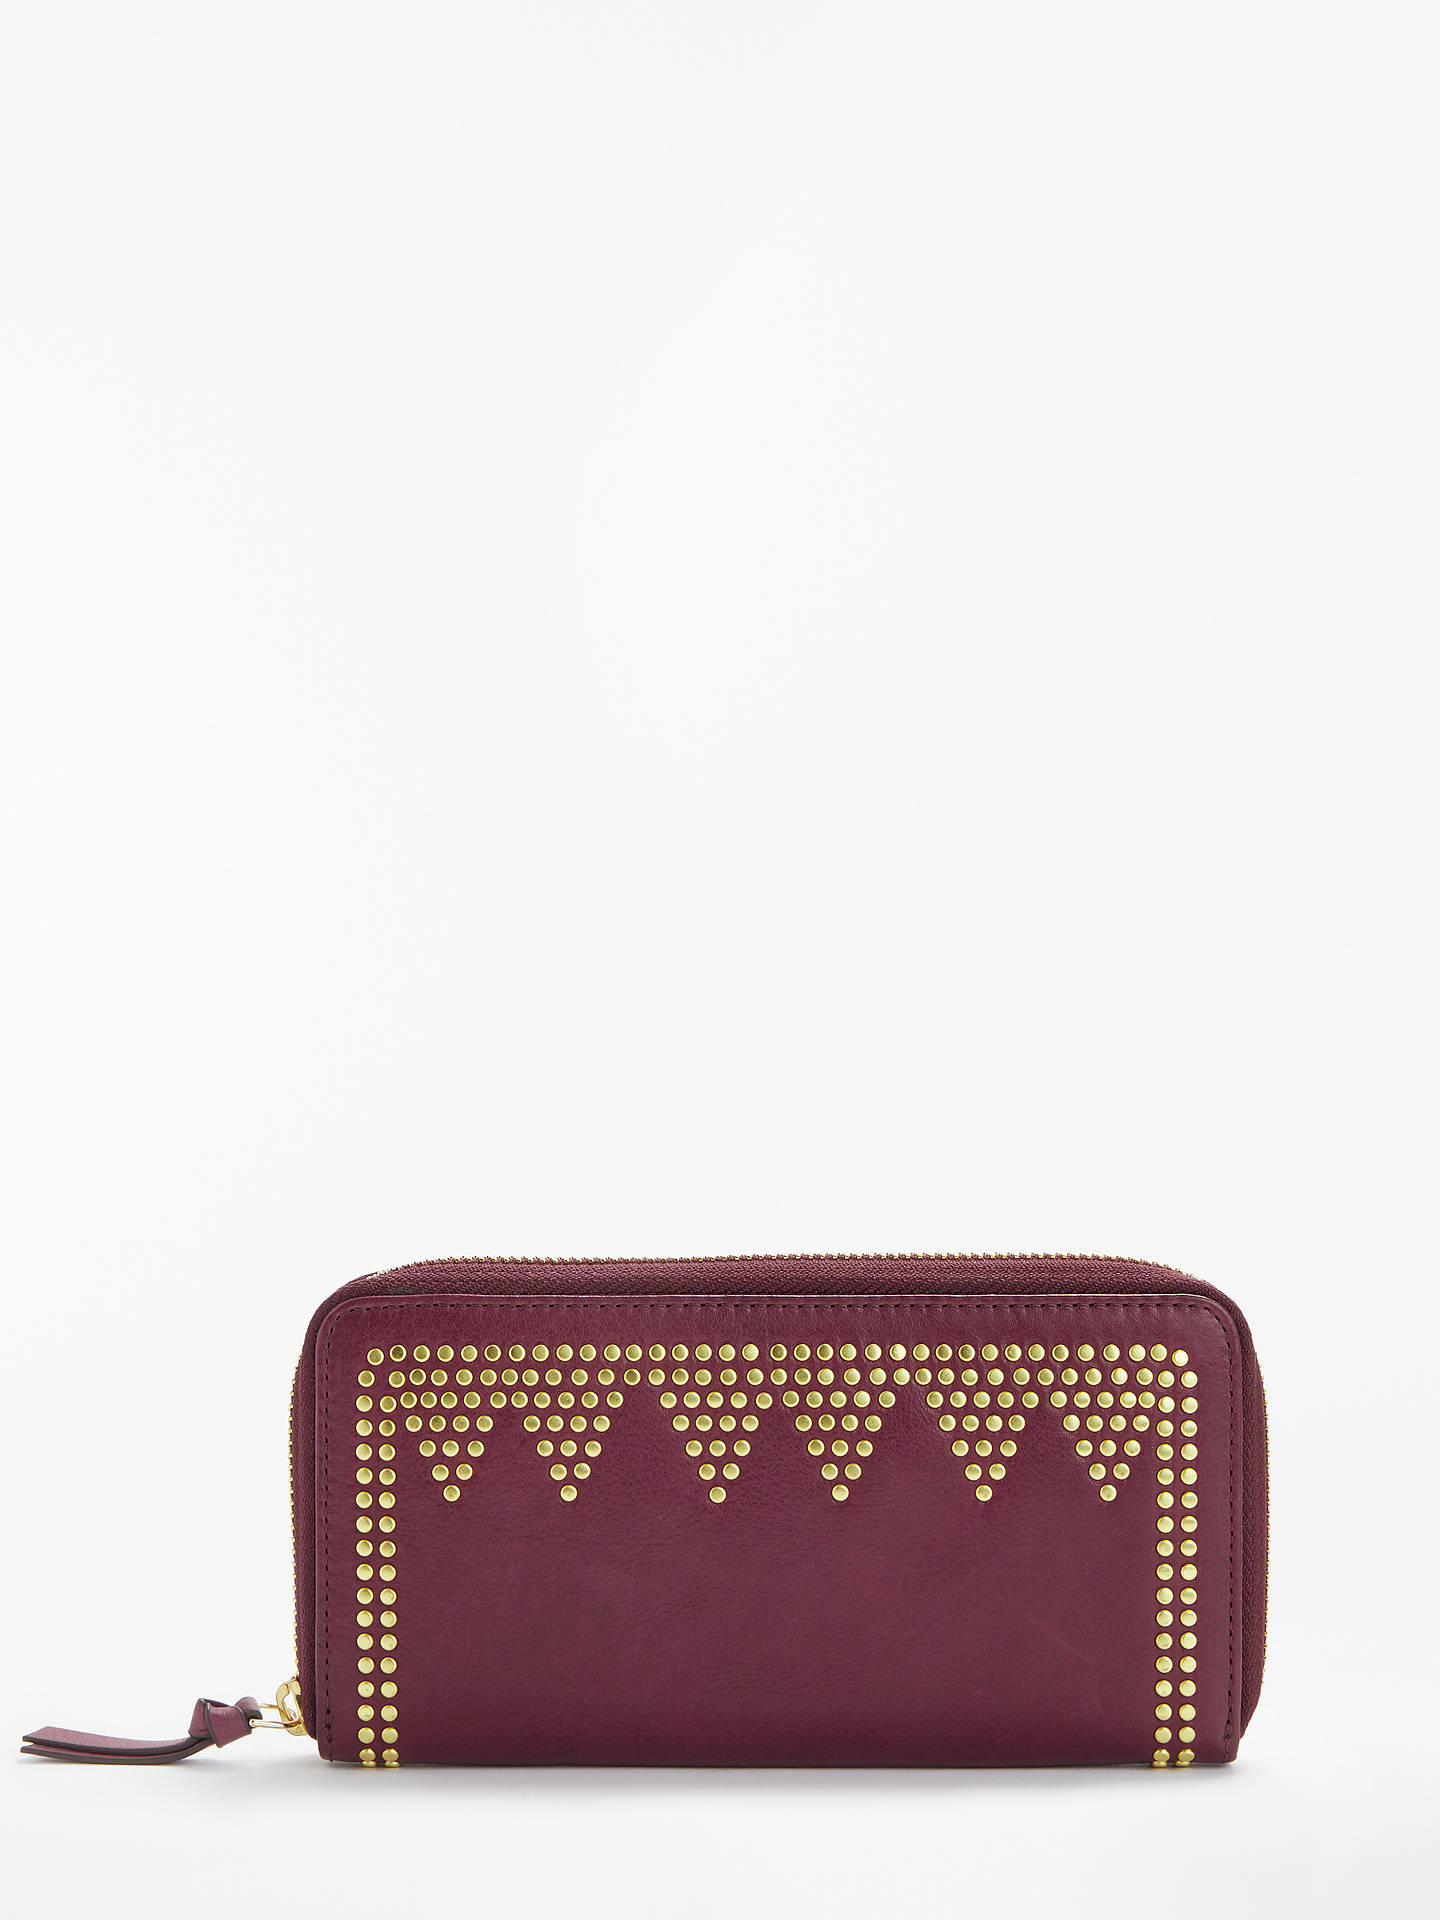 BuyAND/OR May Leather Stud Zip Around Purse, Red Online at johnlewis.com